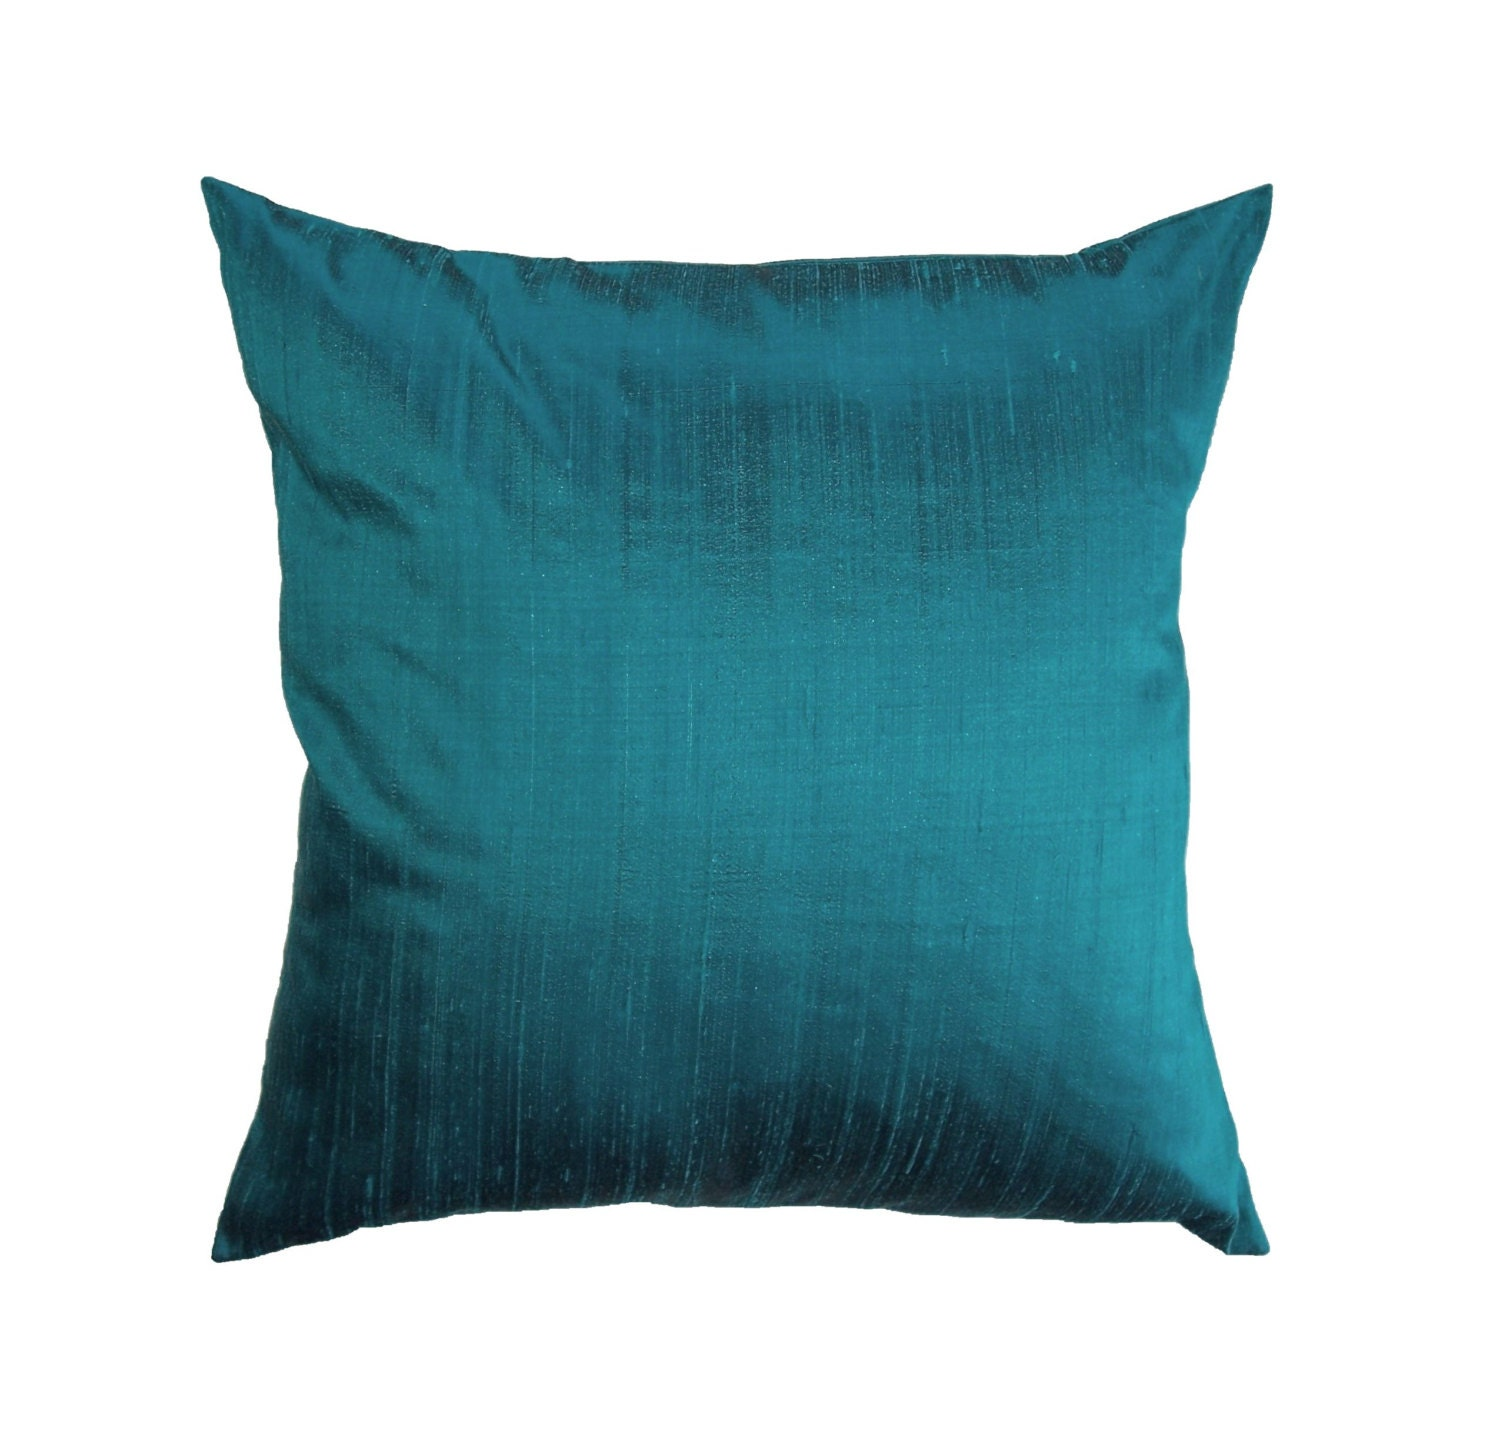 Throw Pillow Turquoise : Turquoise Pillow Cover Silk Turquoise Throw Pillow Cover